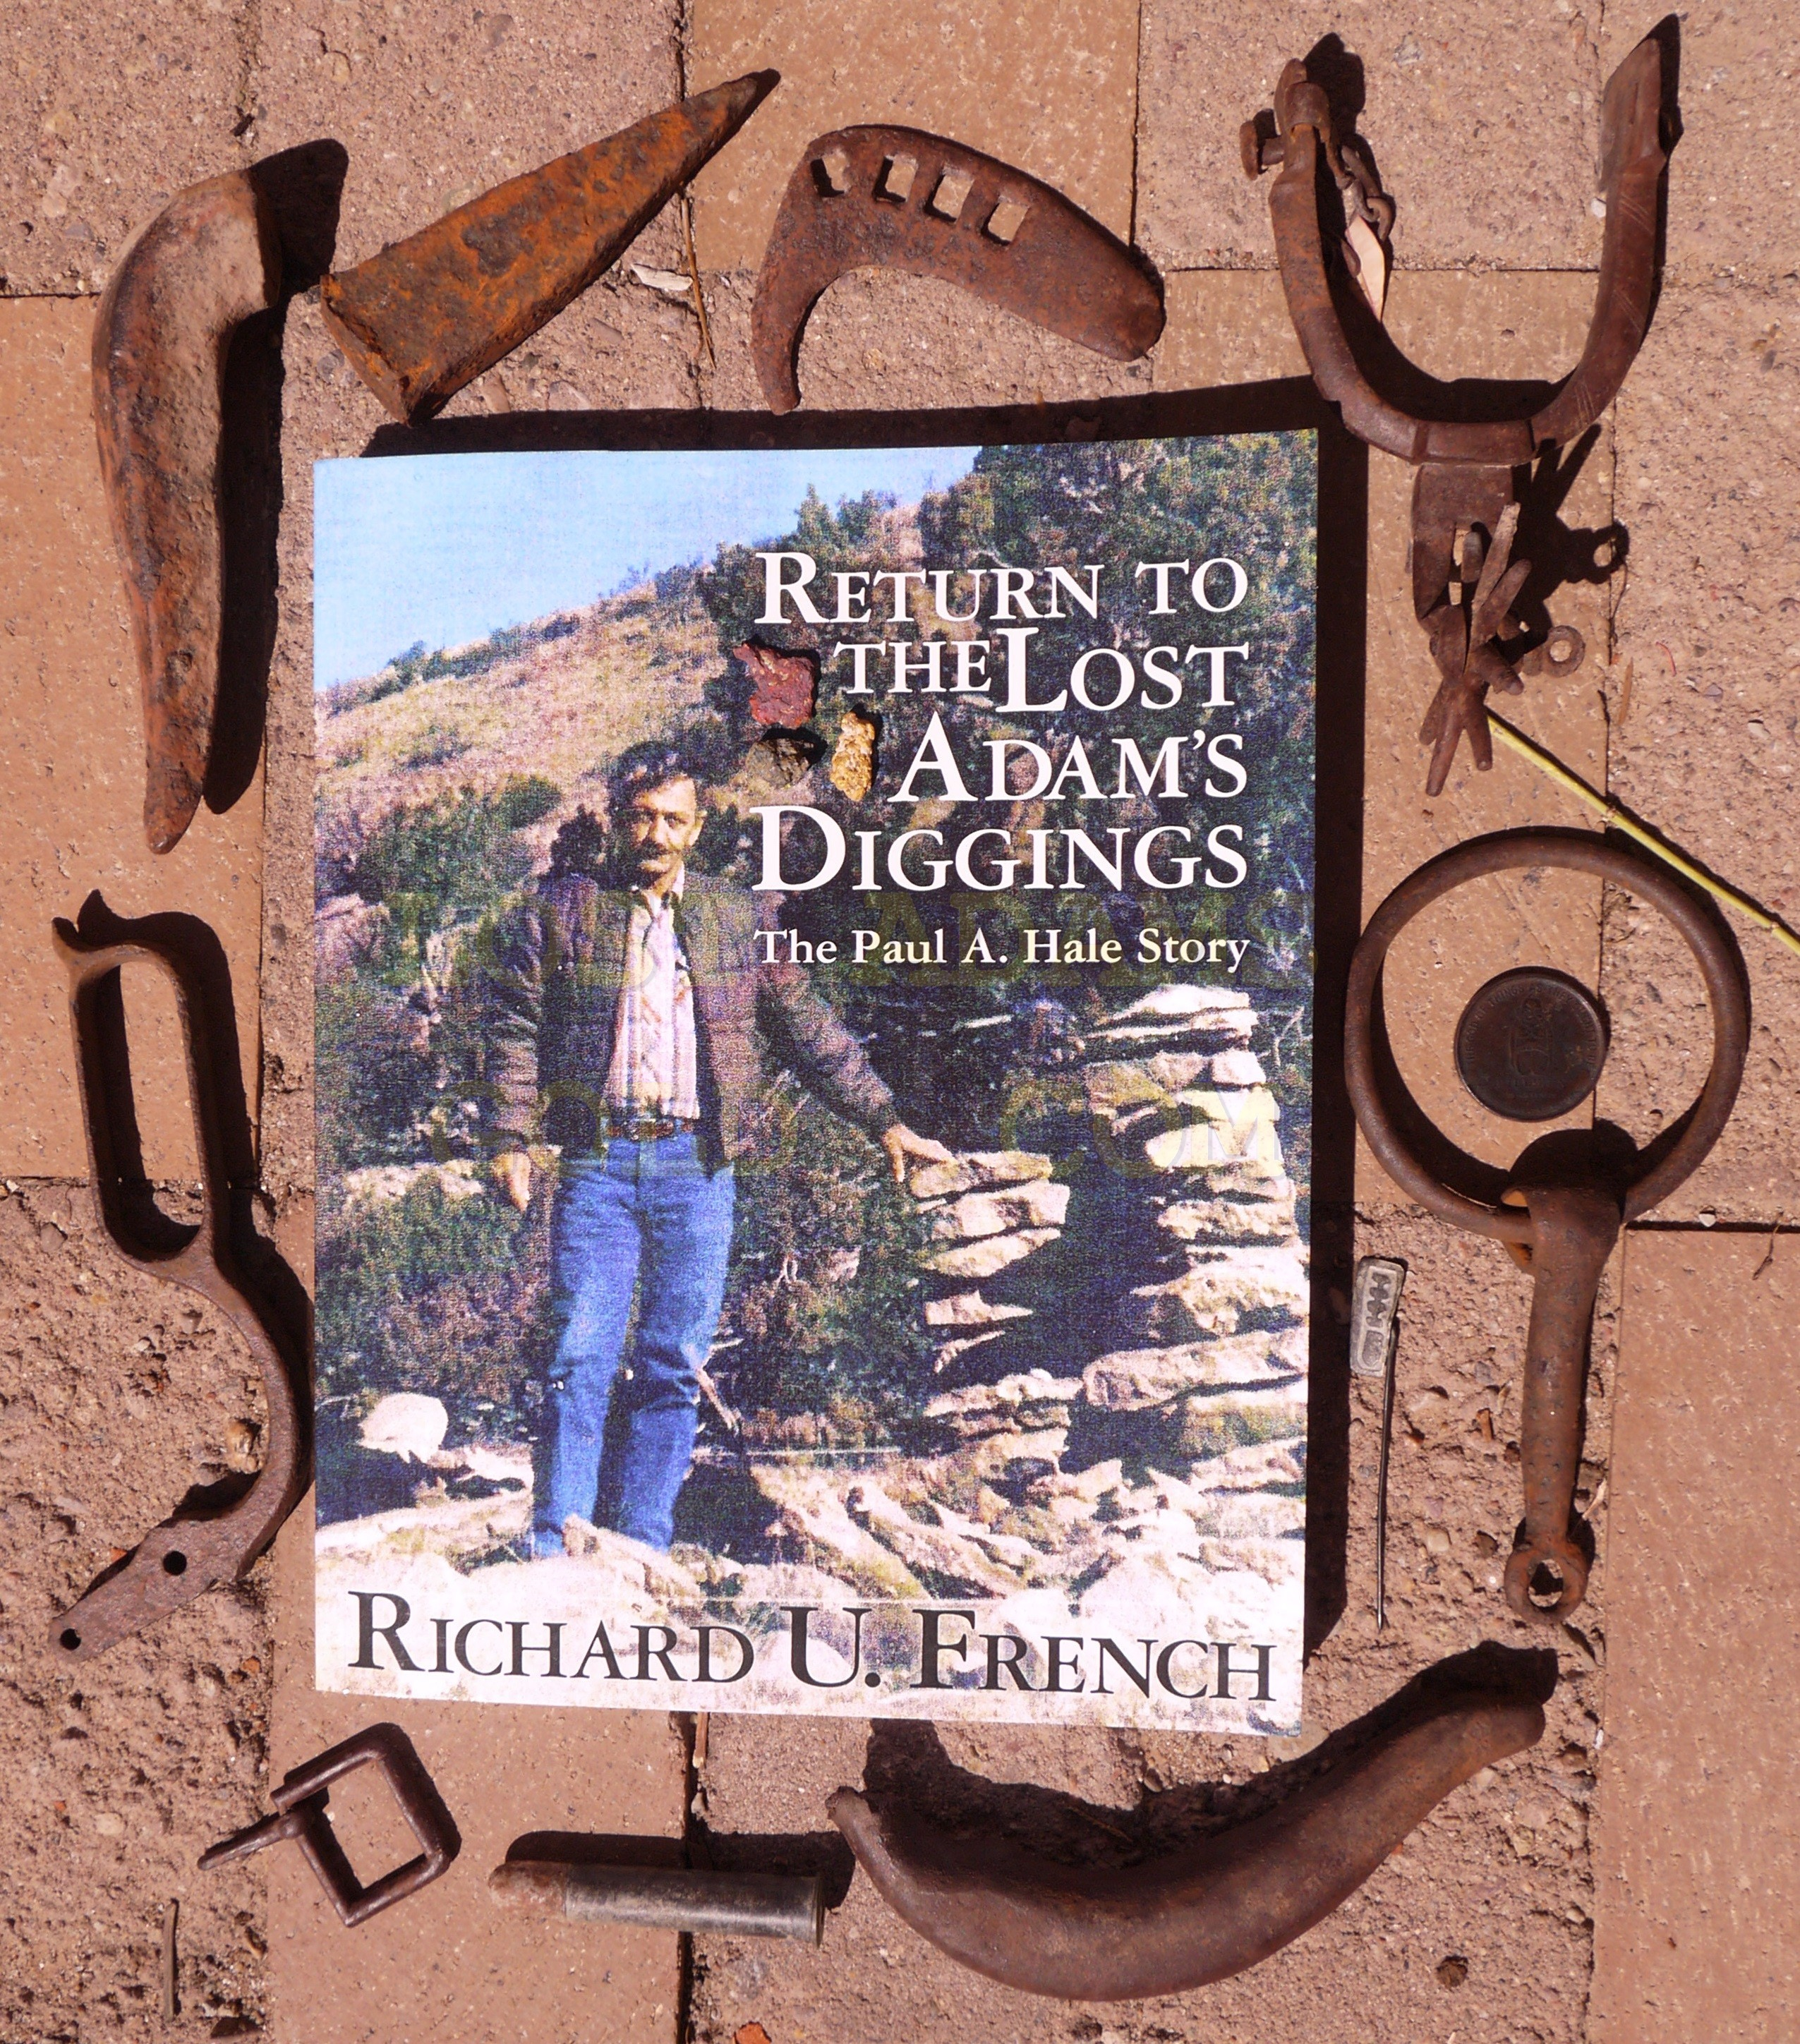 New Book on The Lost Adams Diggings Gold Treasure Legend by Dick French